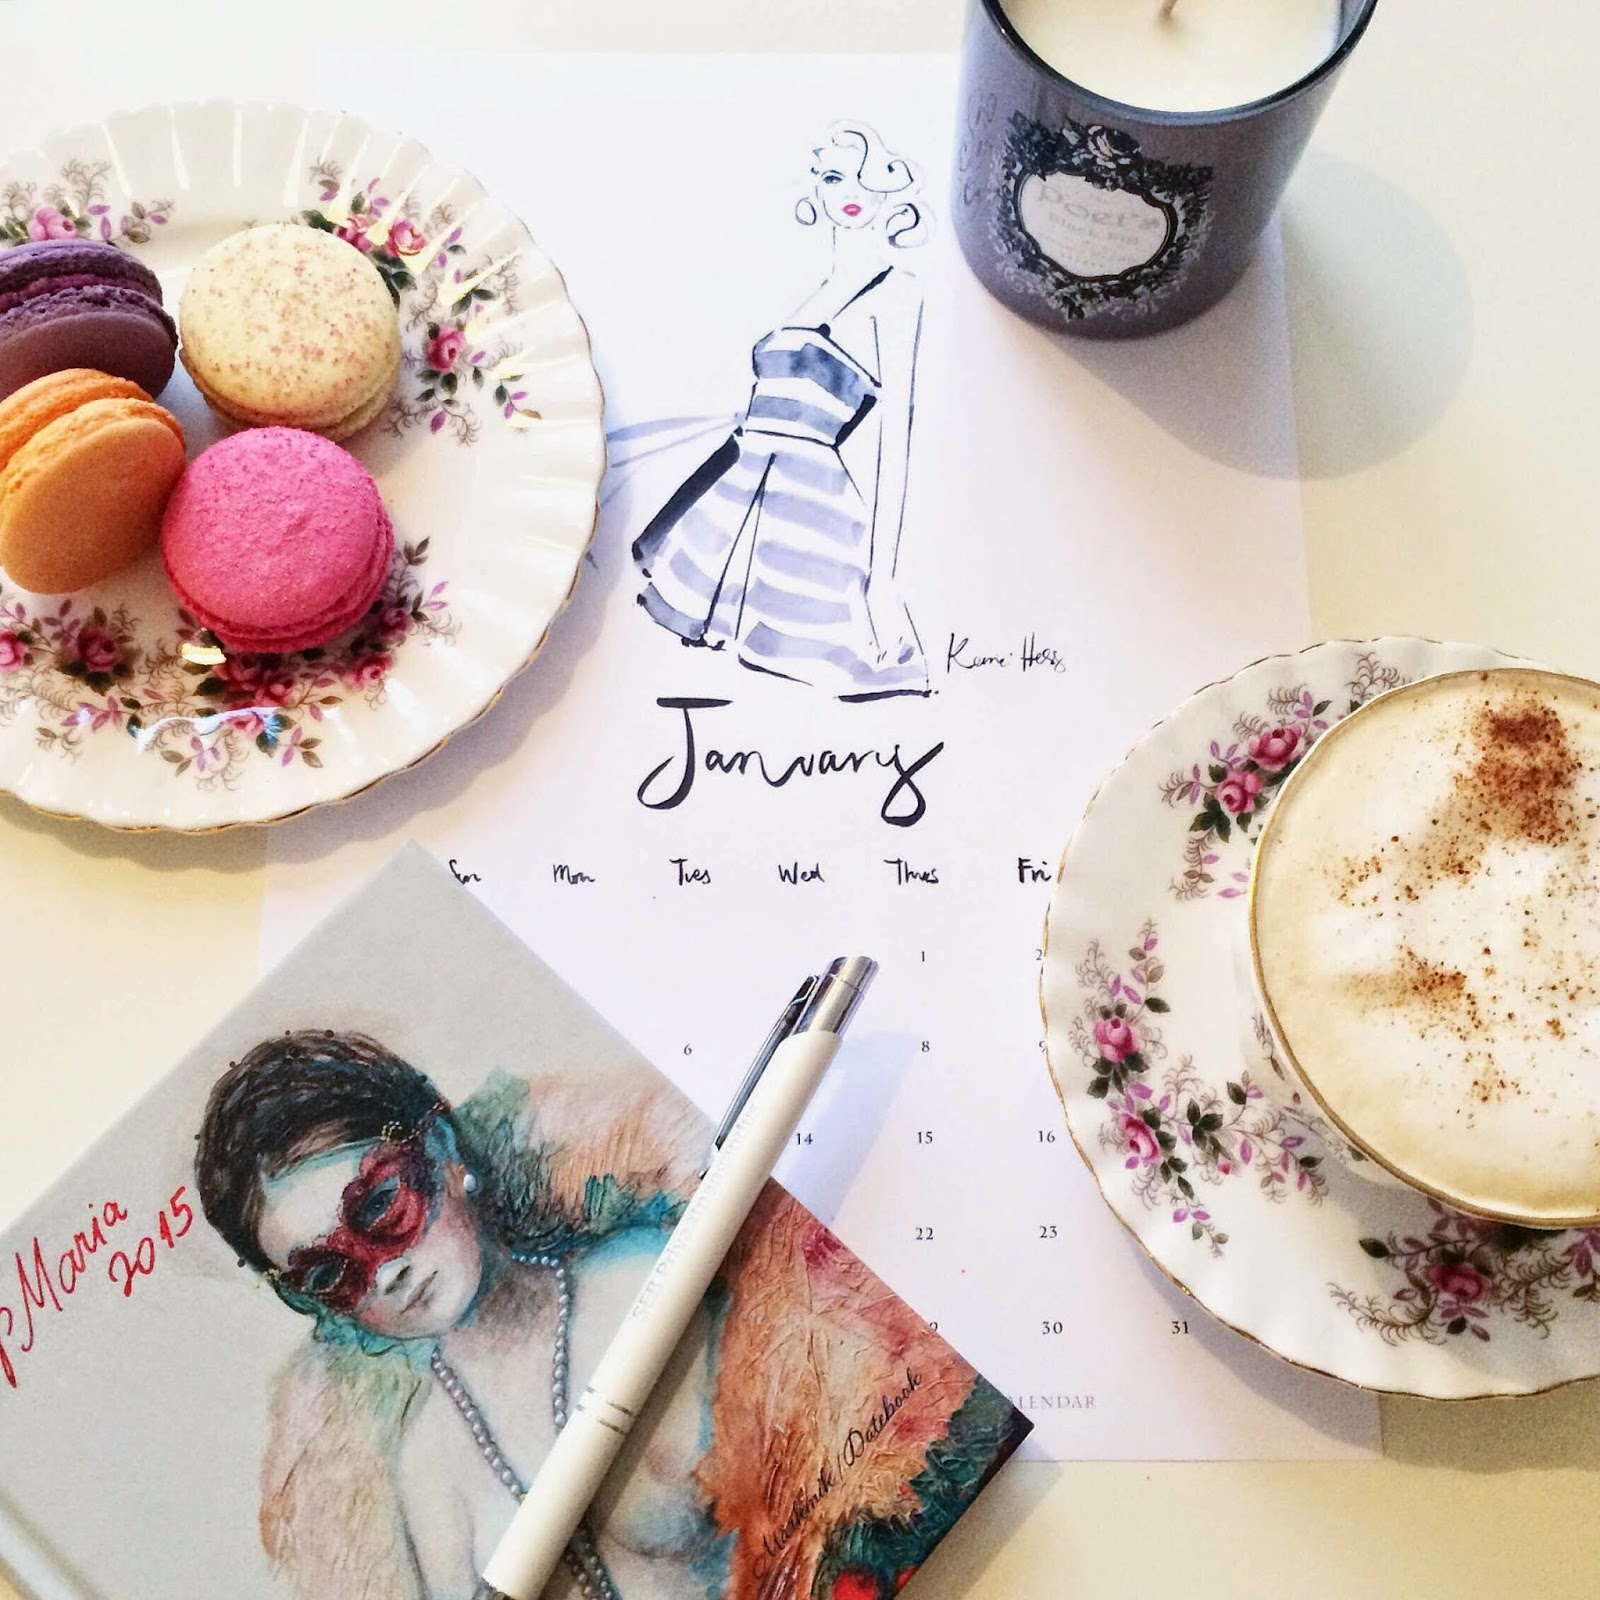 kerrie-huss-january-calendar-macarons-coffee-candle-notebook